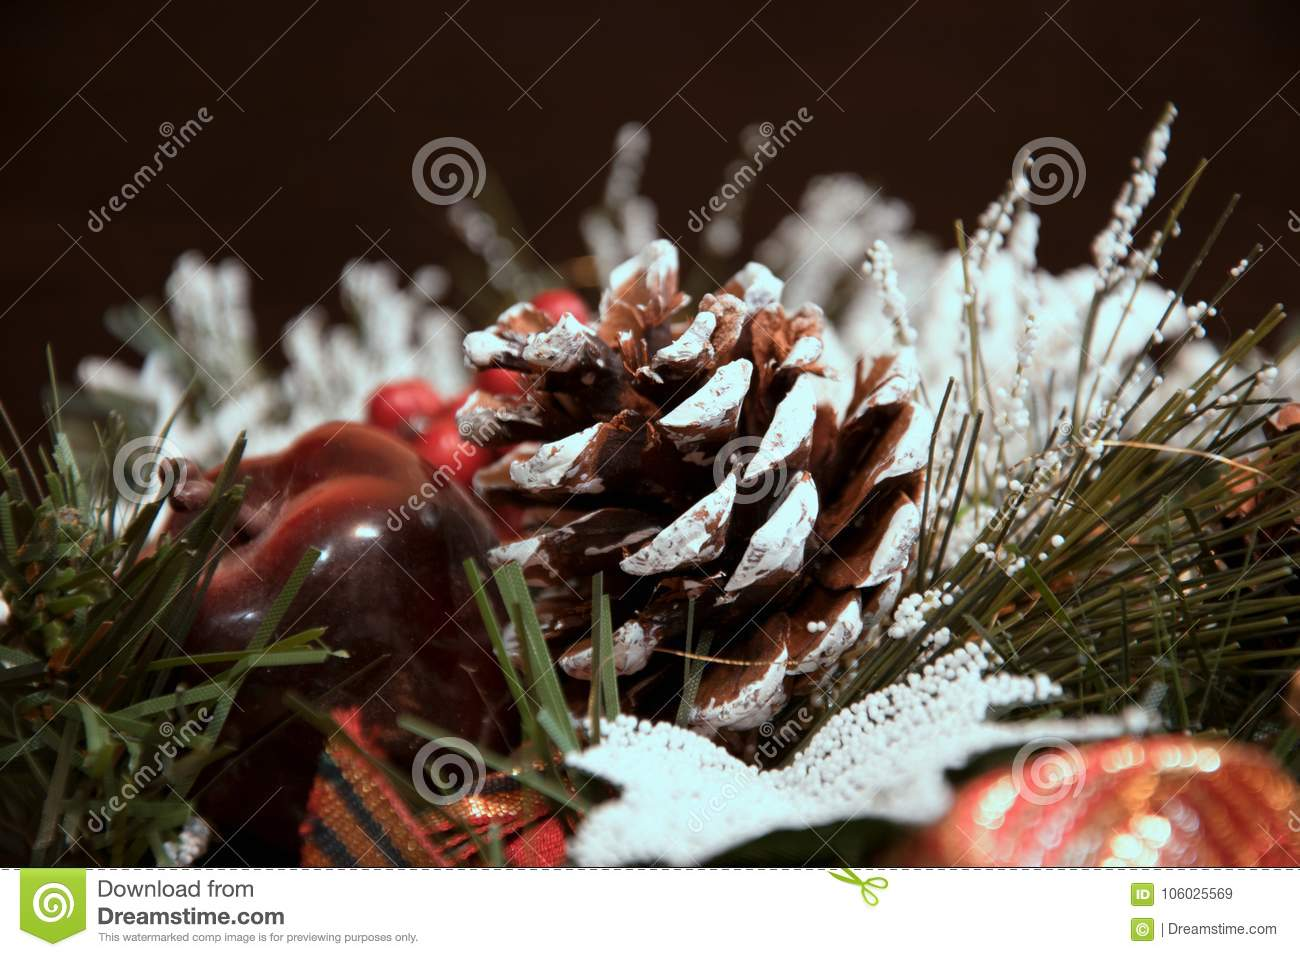 Beautiful Christmas decorations: a cone and branches of a Christmas tree under snow